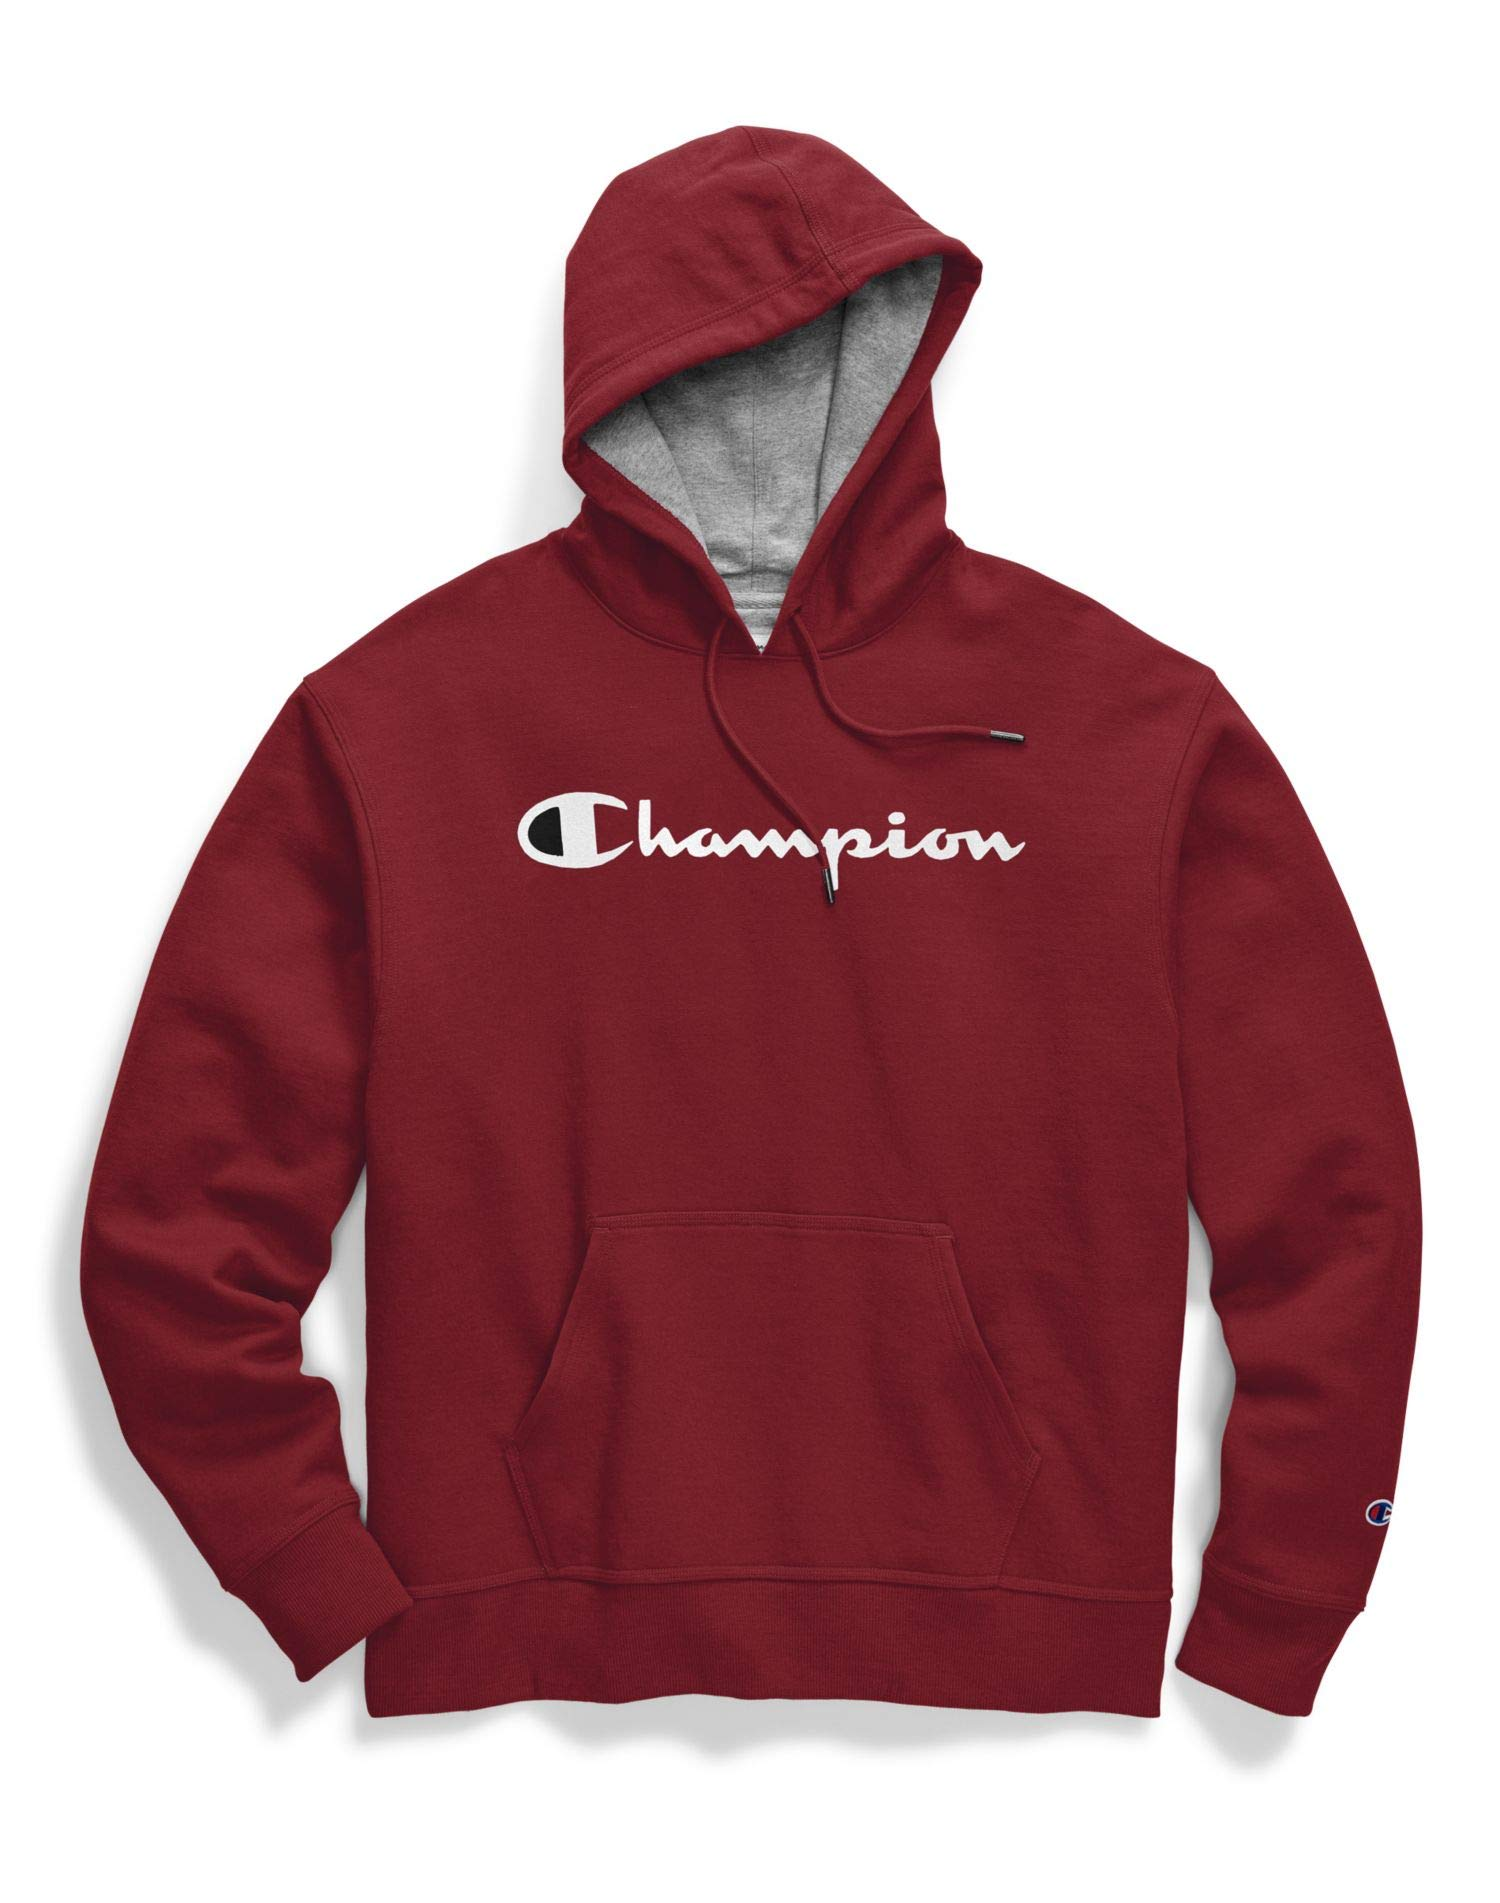 Champion Powerblend Fleece Pullover Hoodie Script Logo (GF89H Y07718) -Cherry Pie -M by Champion